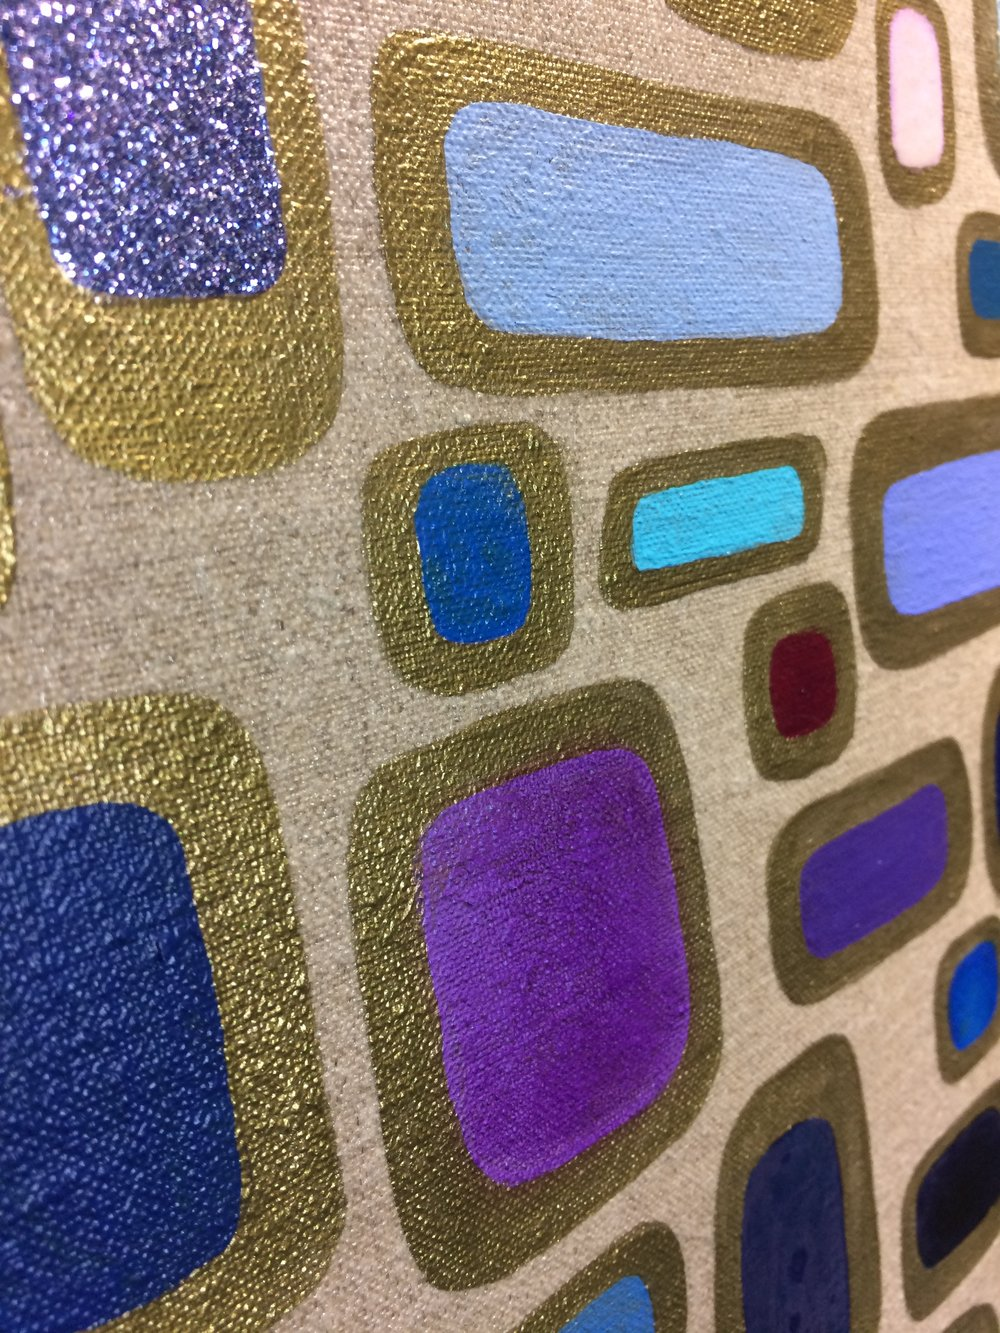 Detail of base colors with a glitter center.